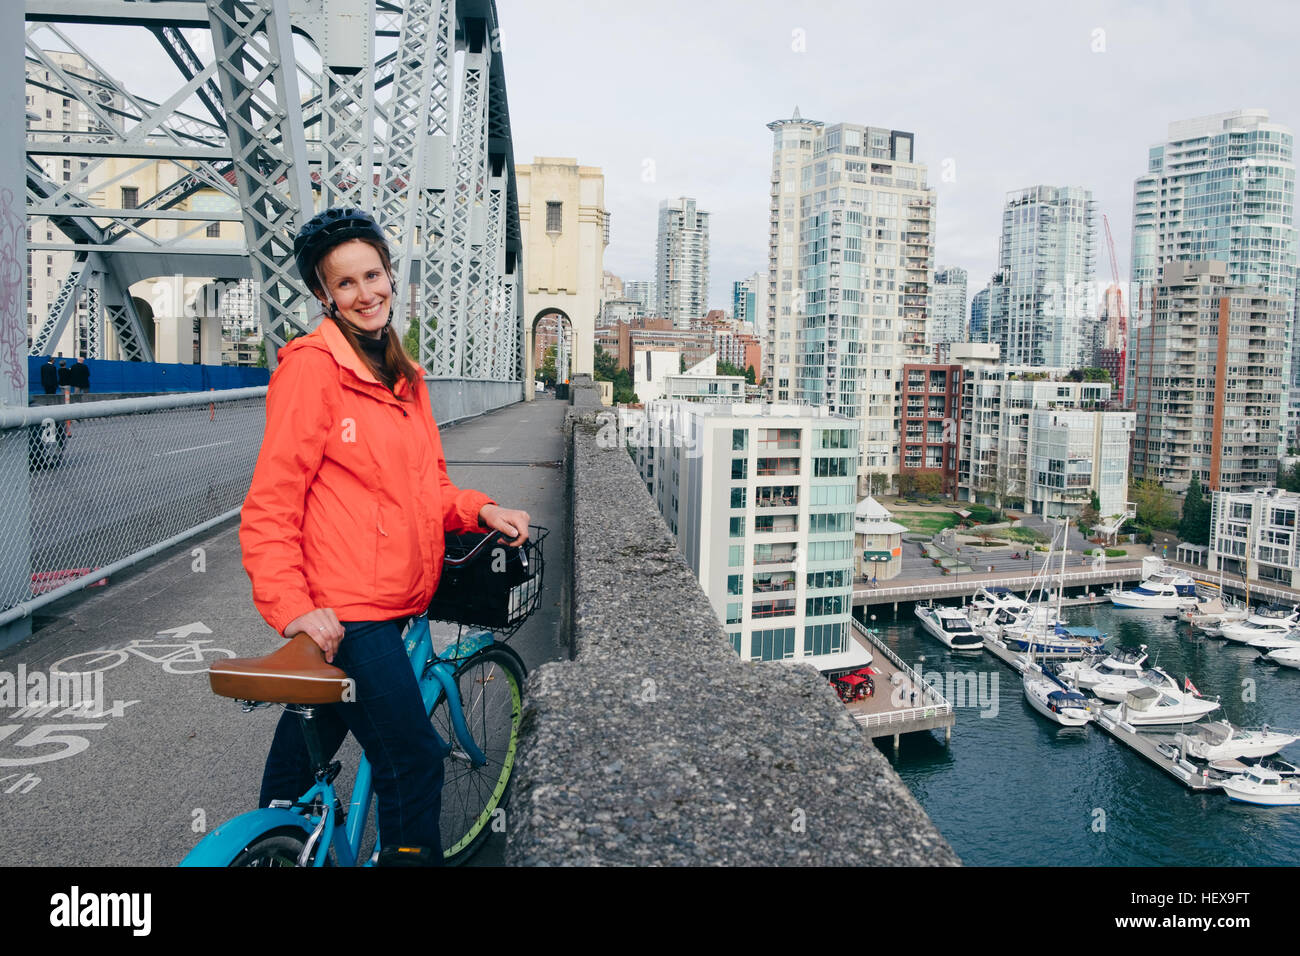 Portrait of young woman ready to ride bicycle on cycle path, Vancouver, British Columbia, Canada - Stock Image